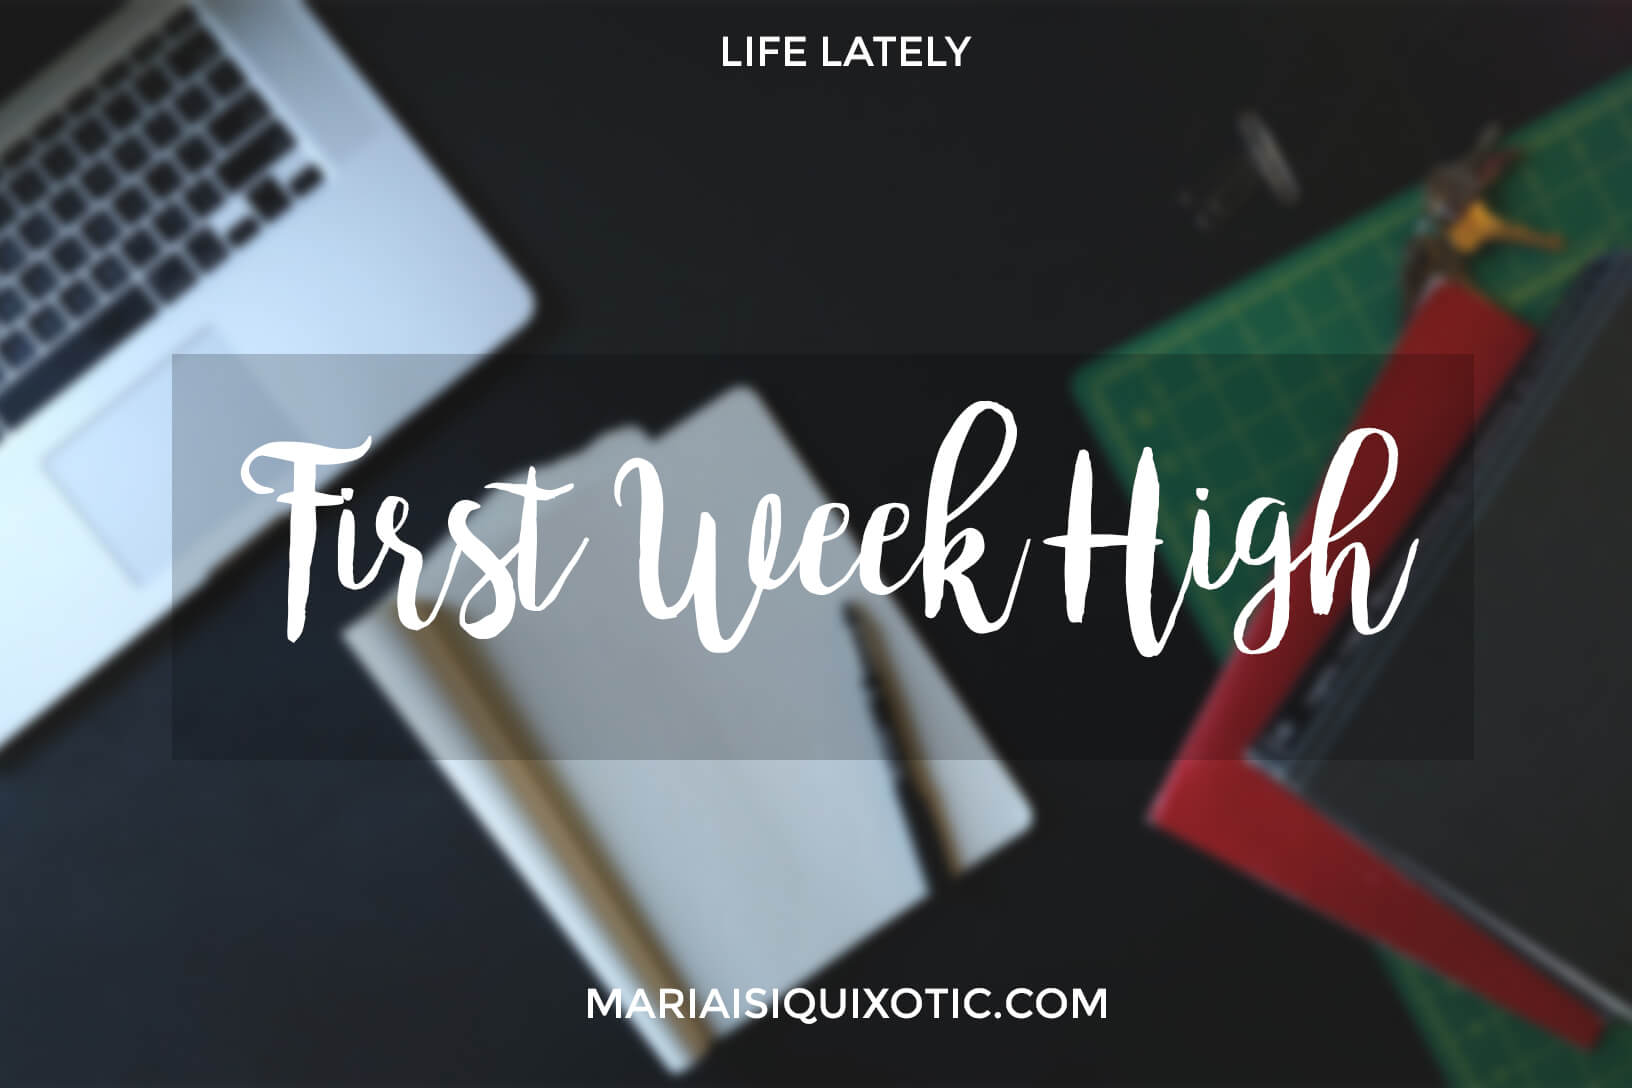 Life Lately: First Week High